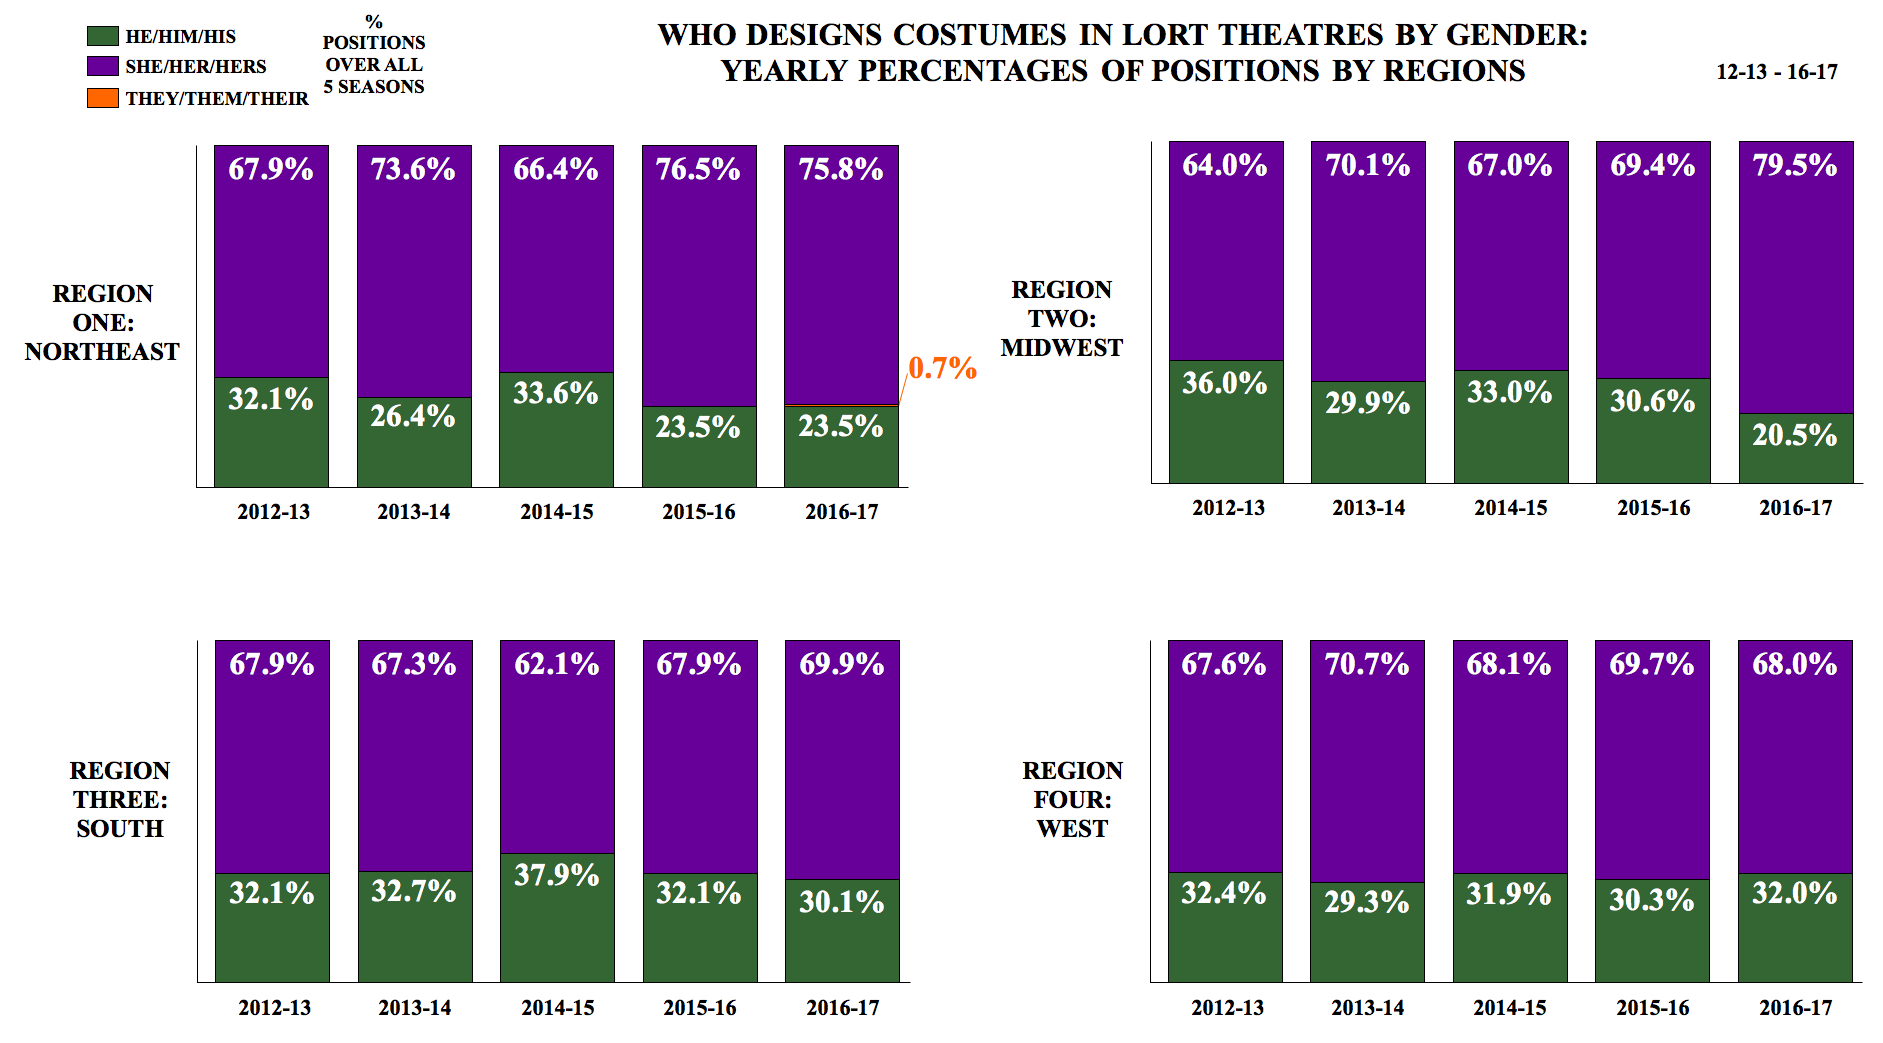 Who Designs Costumes in LORT Theatres by Gender: Yearly Percentages of Positions